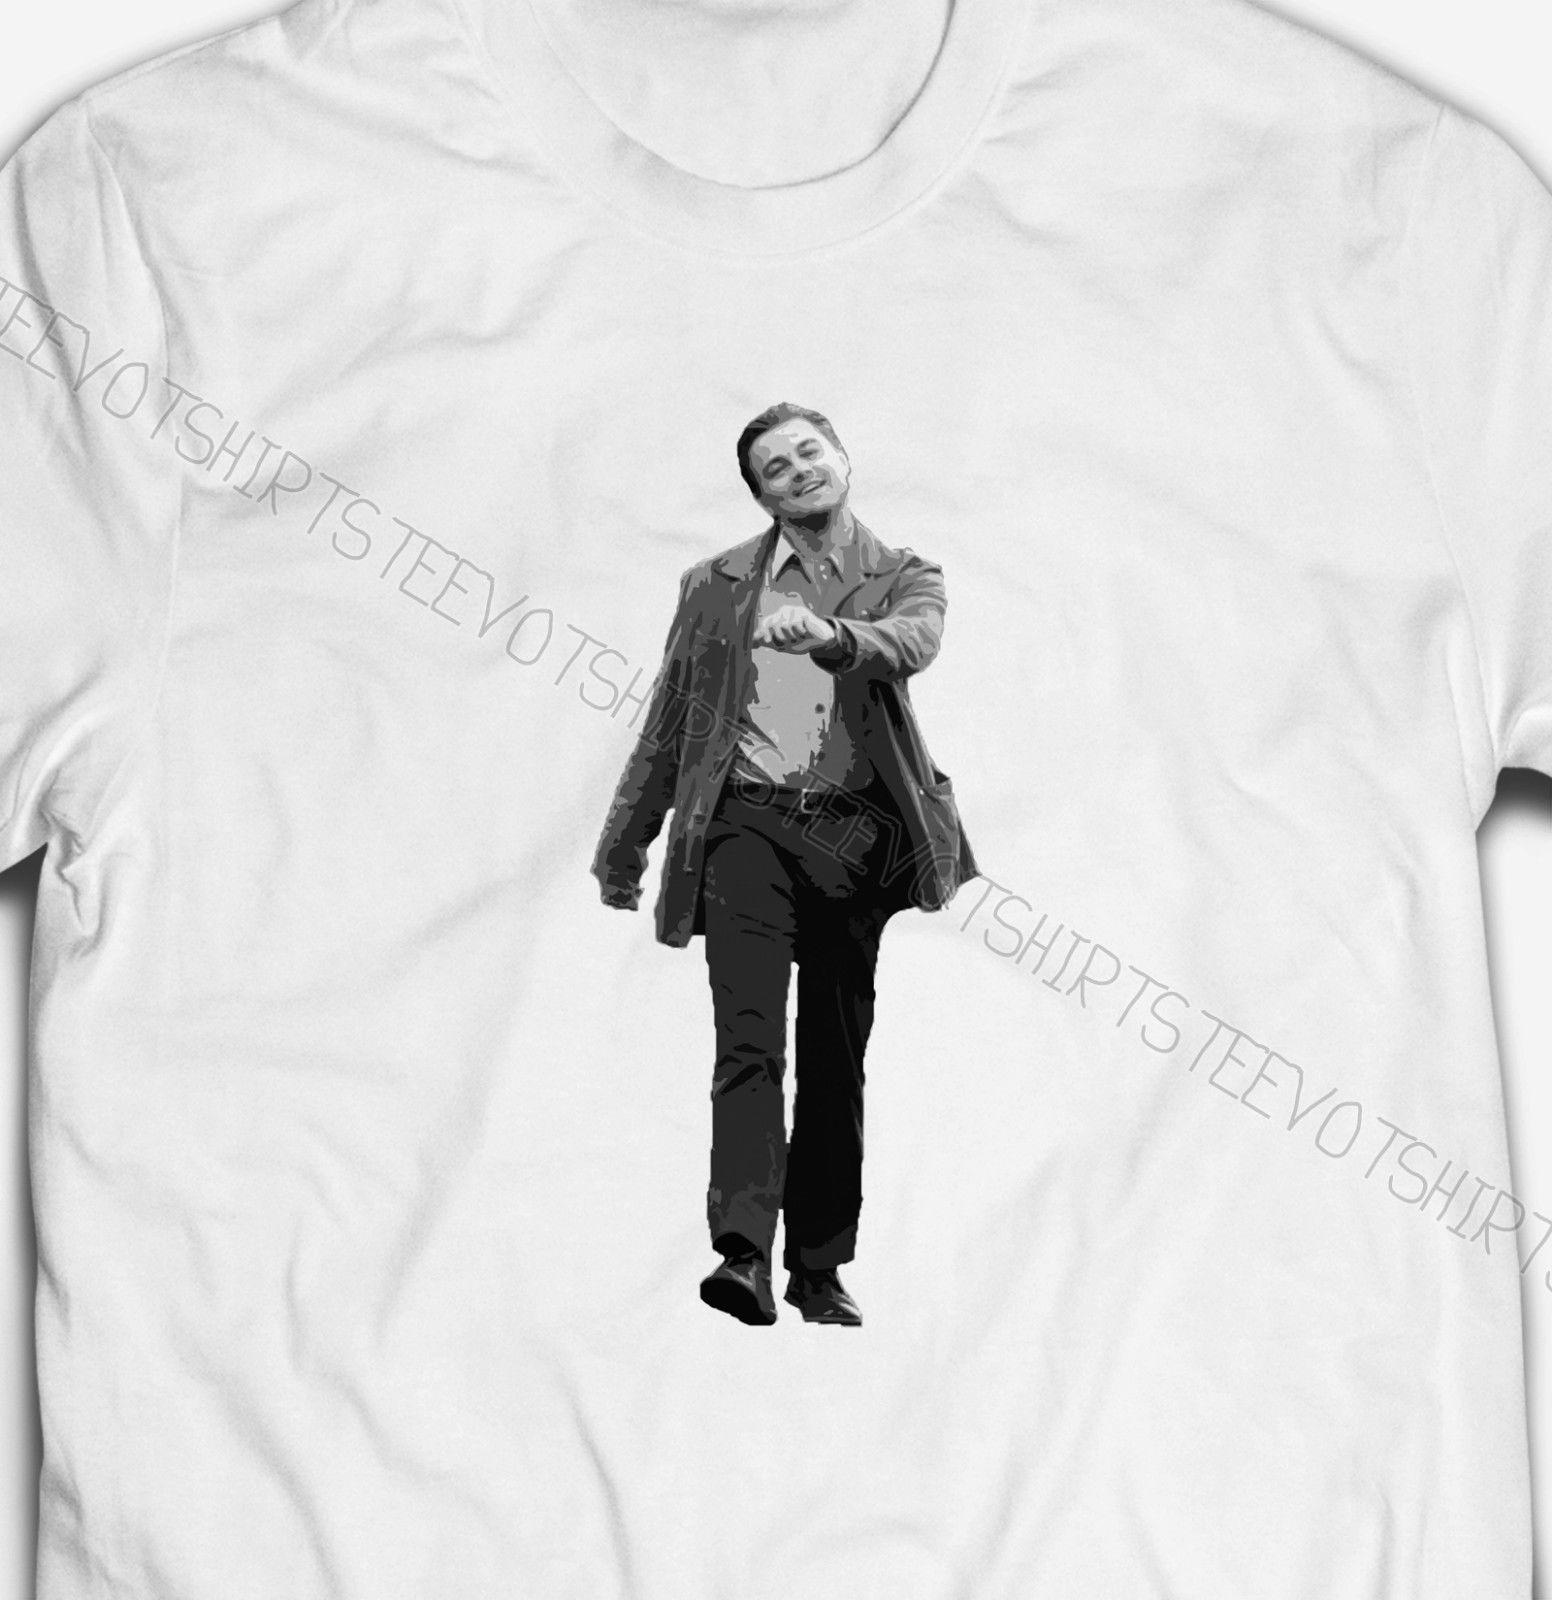 LEONARDO DICAPRIO STRUTTING VIRAL MEME FUNNY Mens 100% COTTON T-shirt TEE Shirt white black grey red trousers tshirt